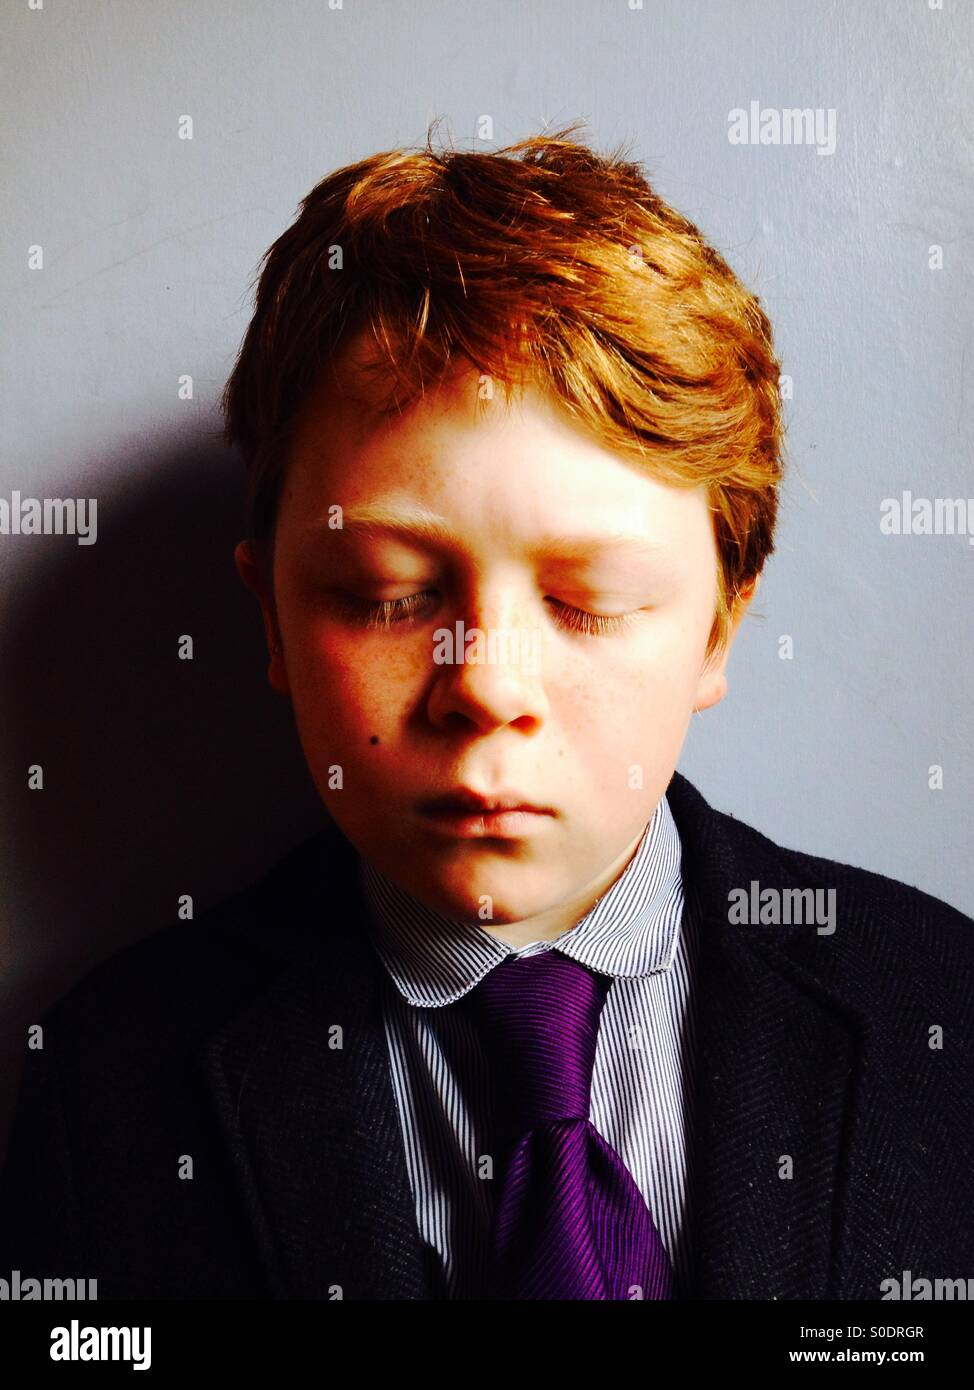 Ginger haired boy with eyes closed - Stock Image